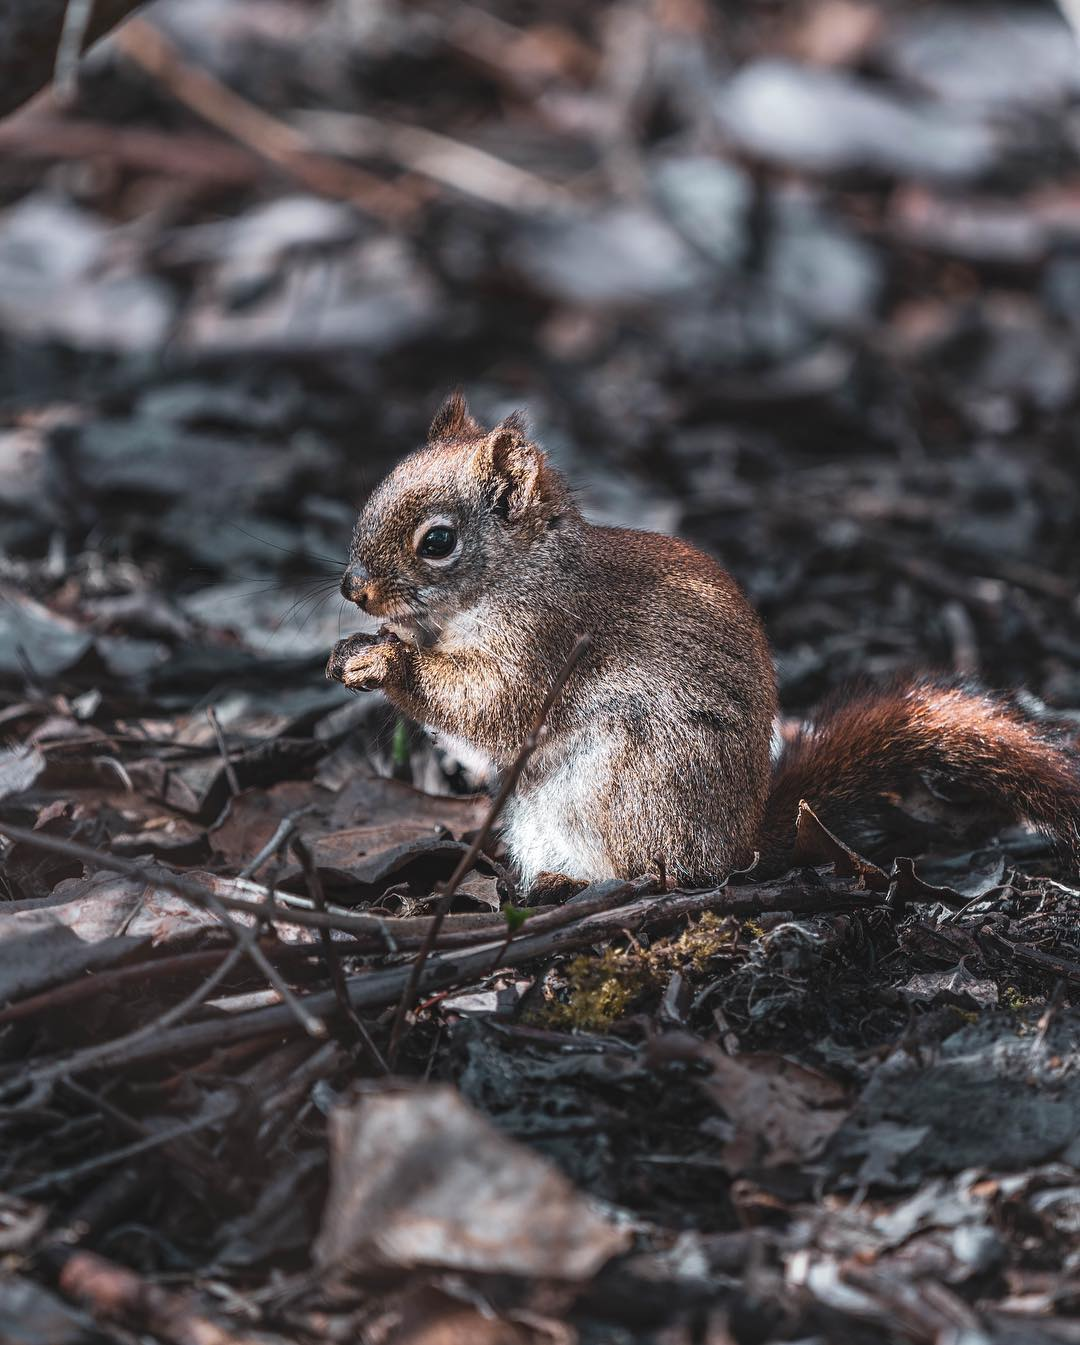 Small red brown squirrel sitting amidst debris